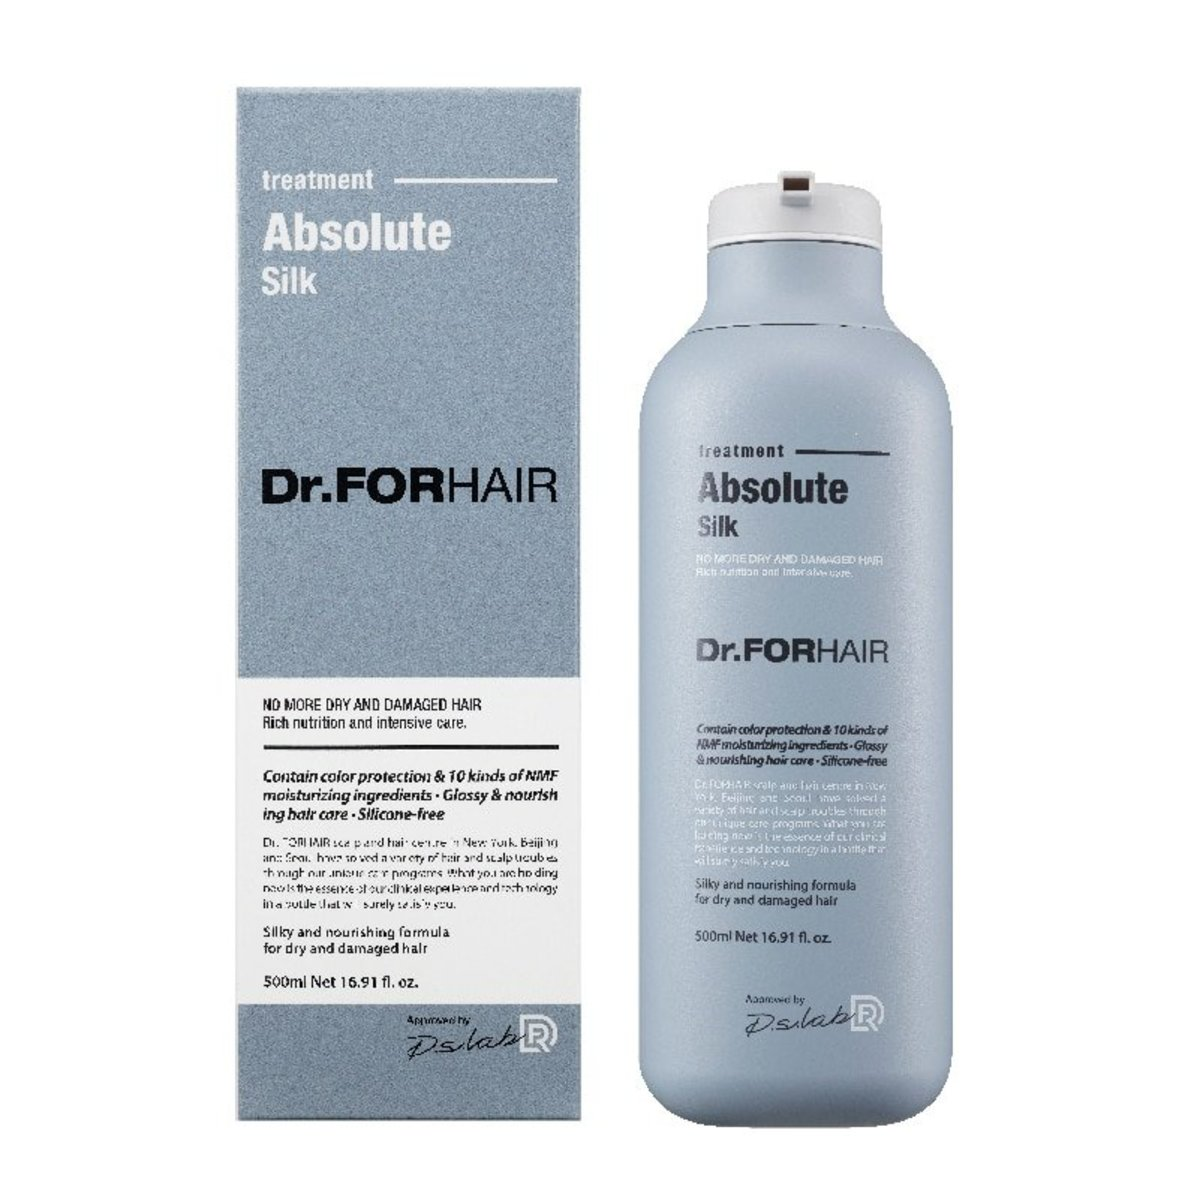 Dr.FORHAIR Absolute Silk Treatment 500ml (Parallel Import) -1748